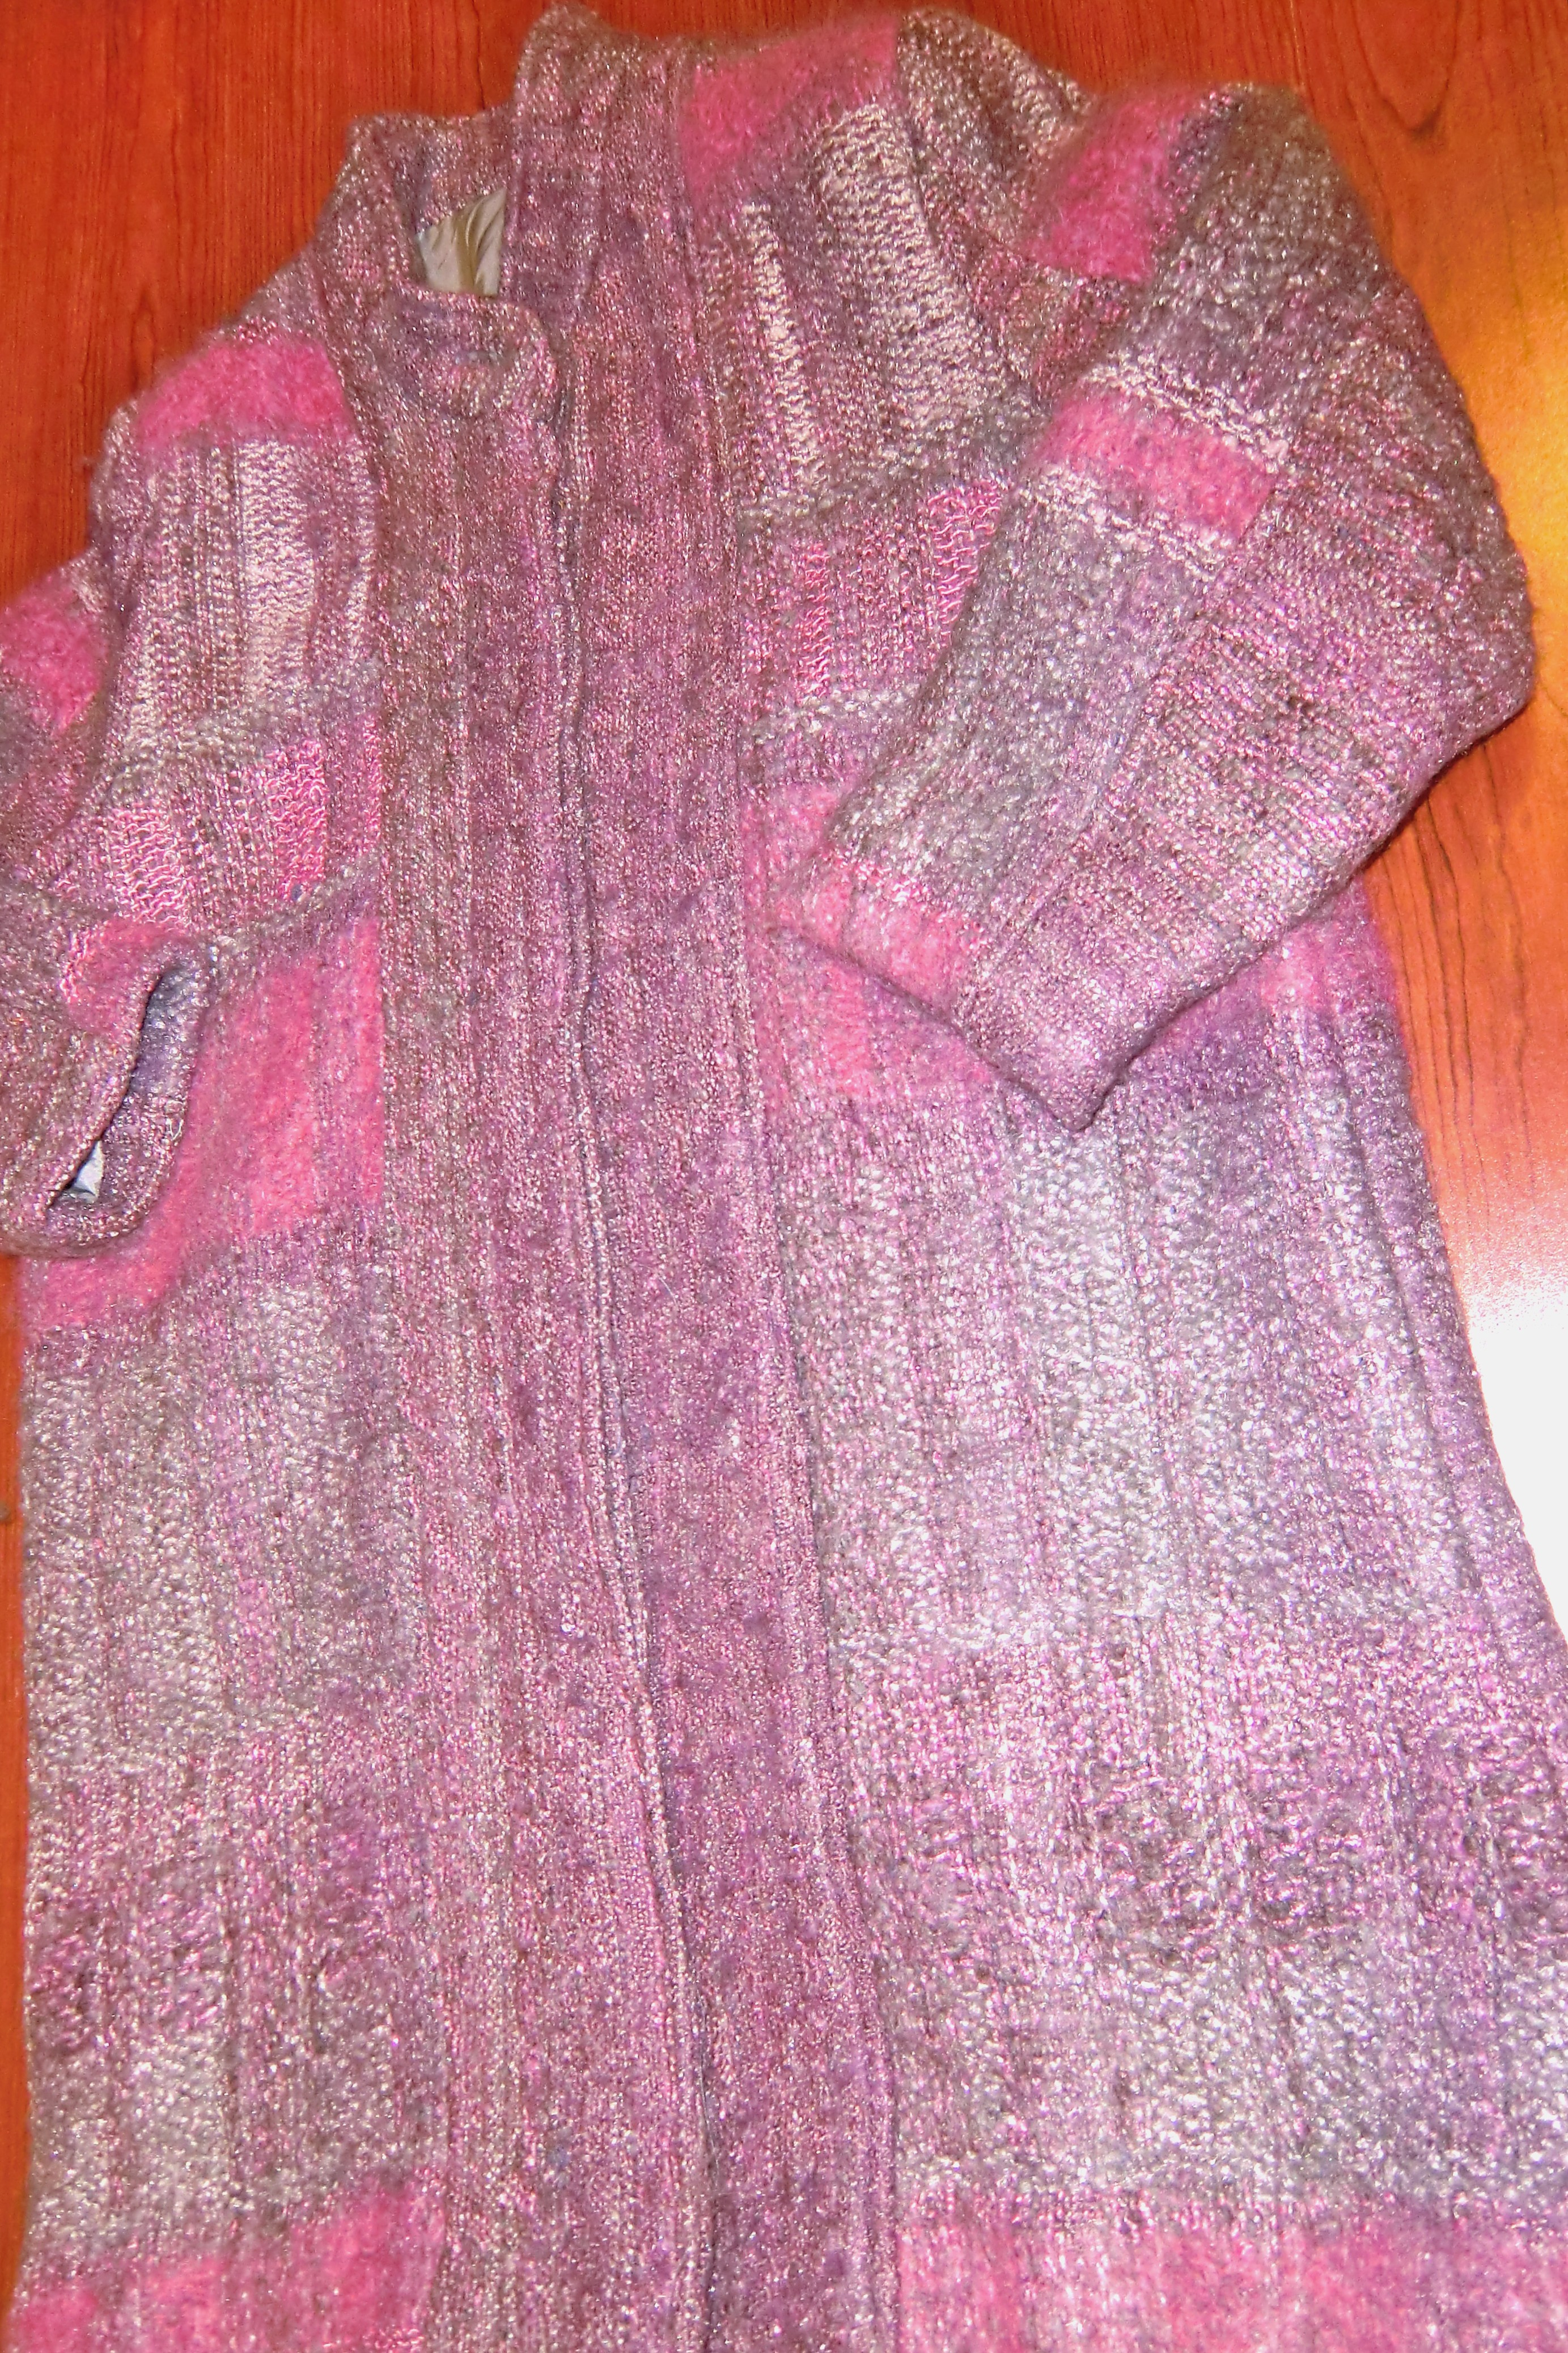 coat woven in summer and winter pattern